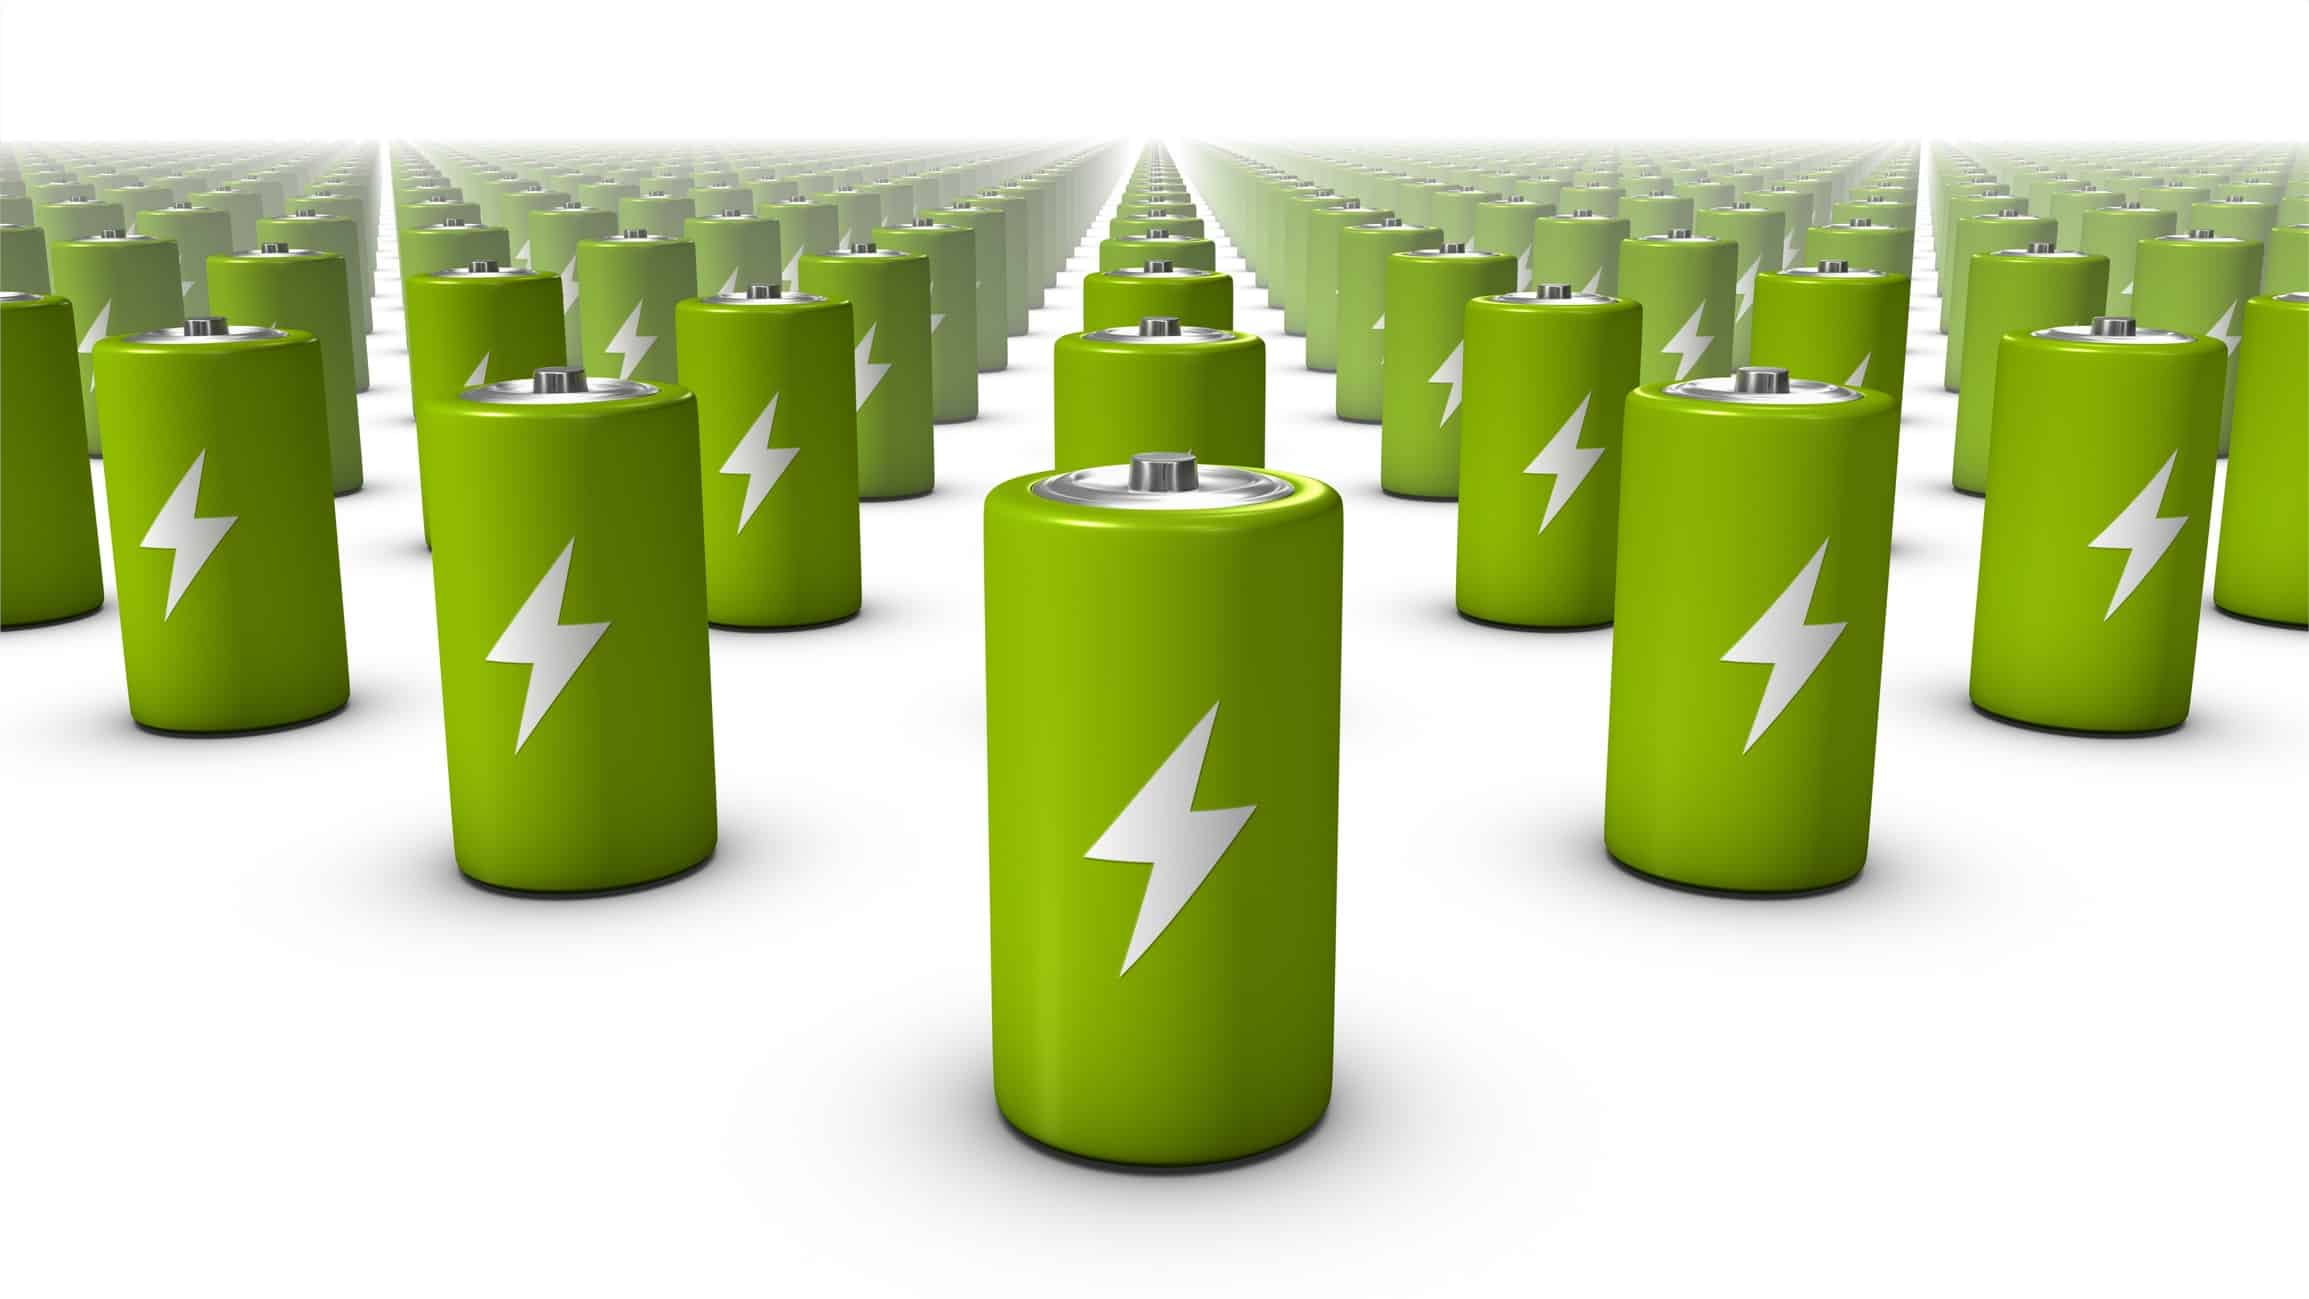 A line-up of green lithium batteries, indicating positive share price movement for clean ASX lithium miners